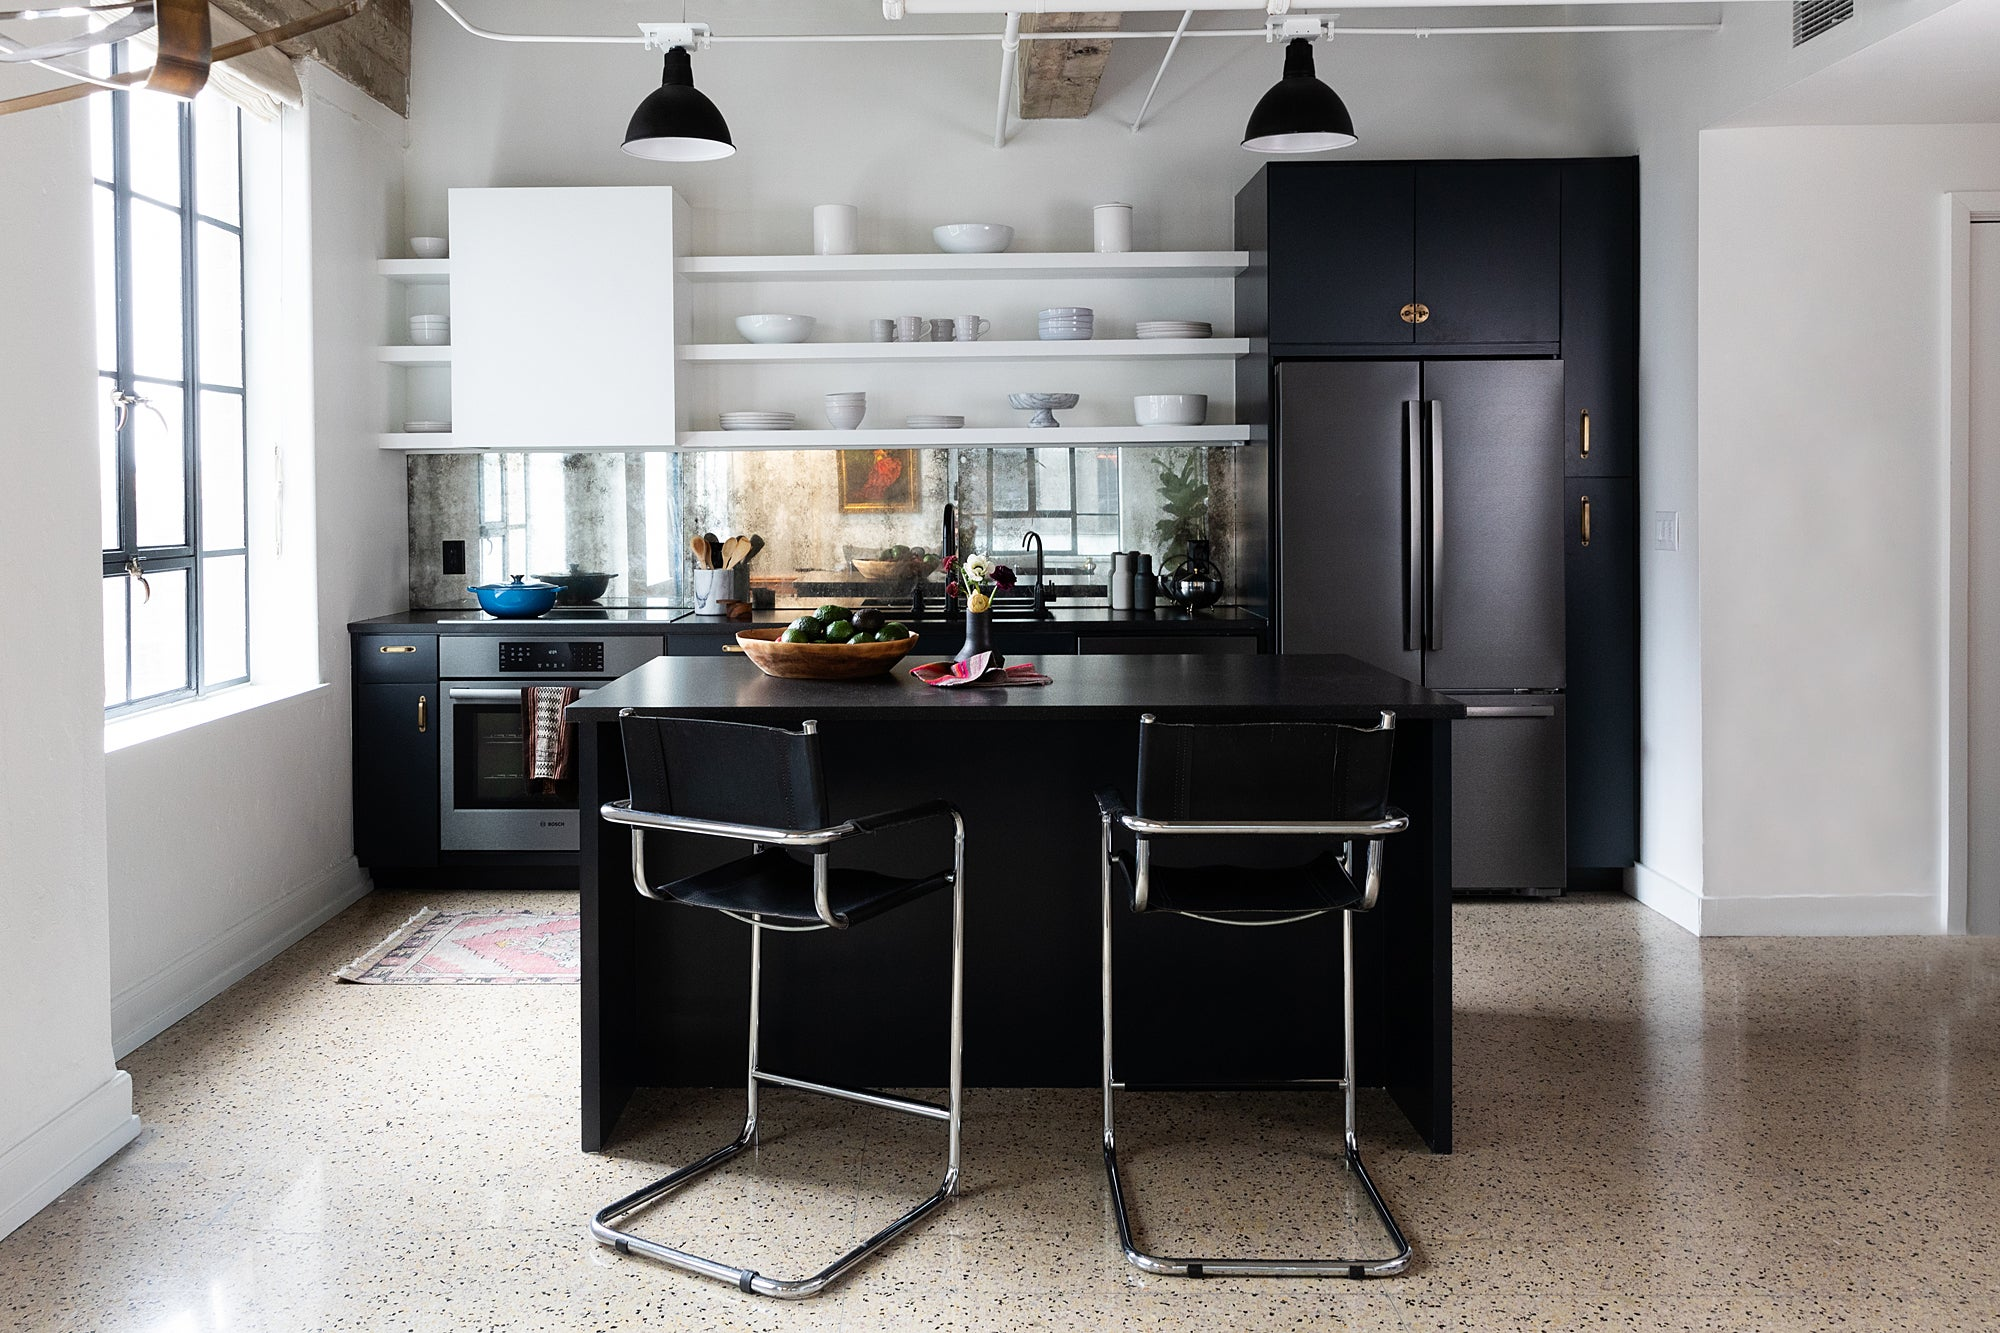 - The Antique Mirror Backsplash In This Art Deco Kitchen Opened Up